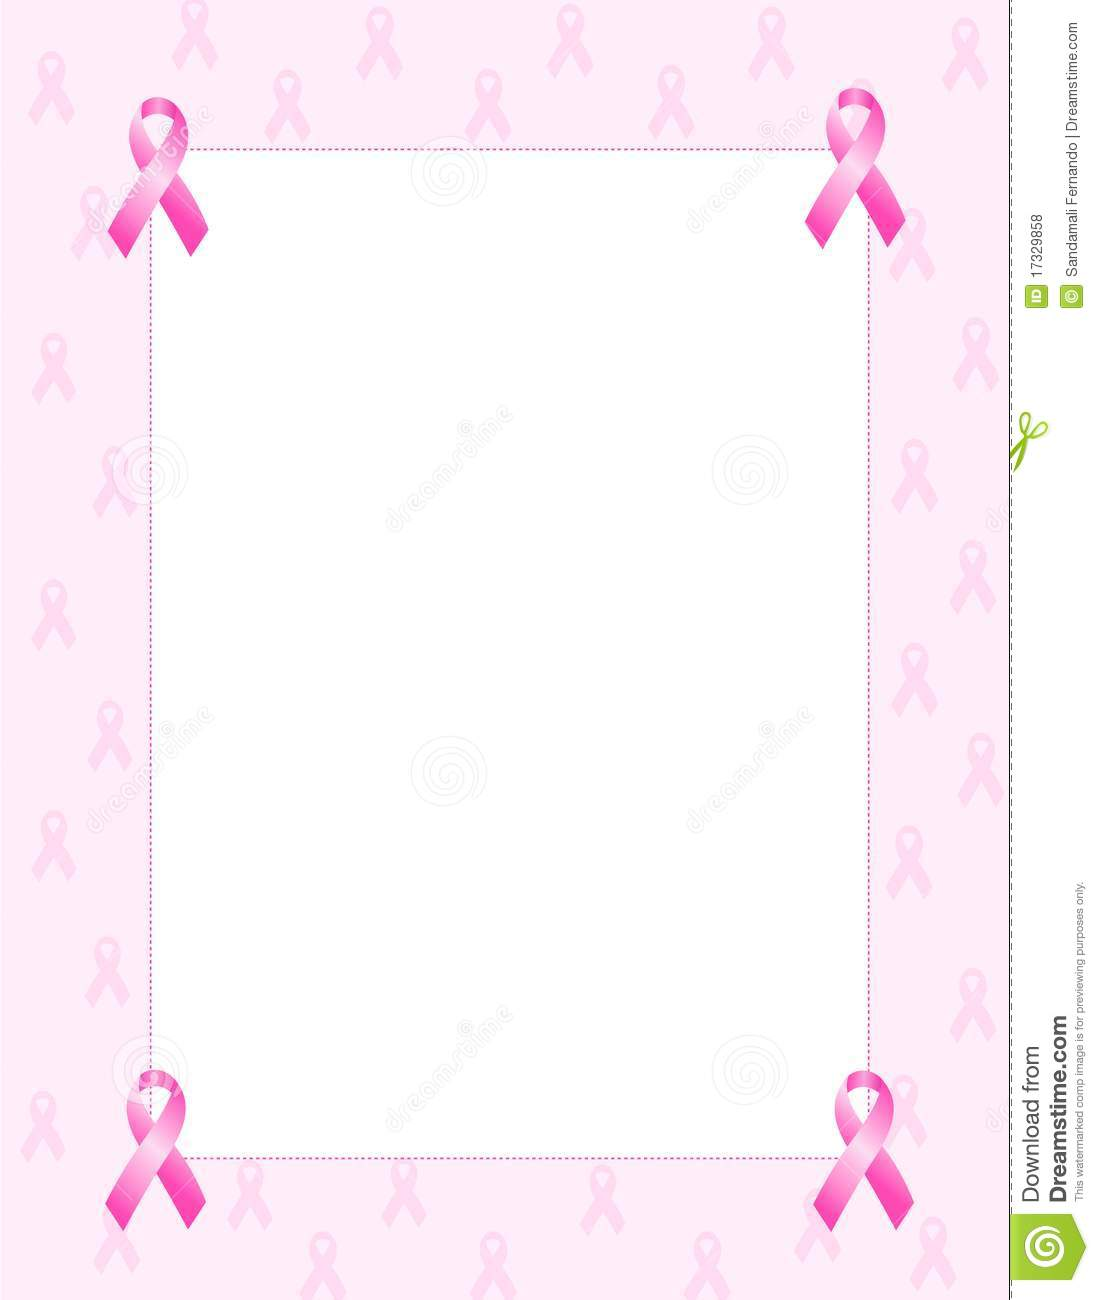 Pink Ribbon Border Clipart - Clipart Suggest